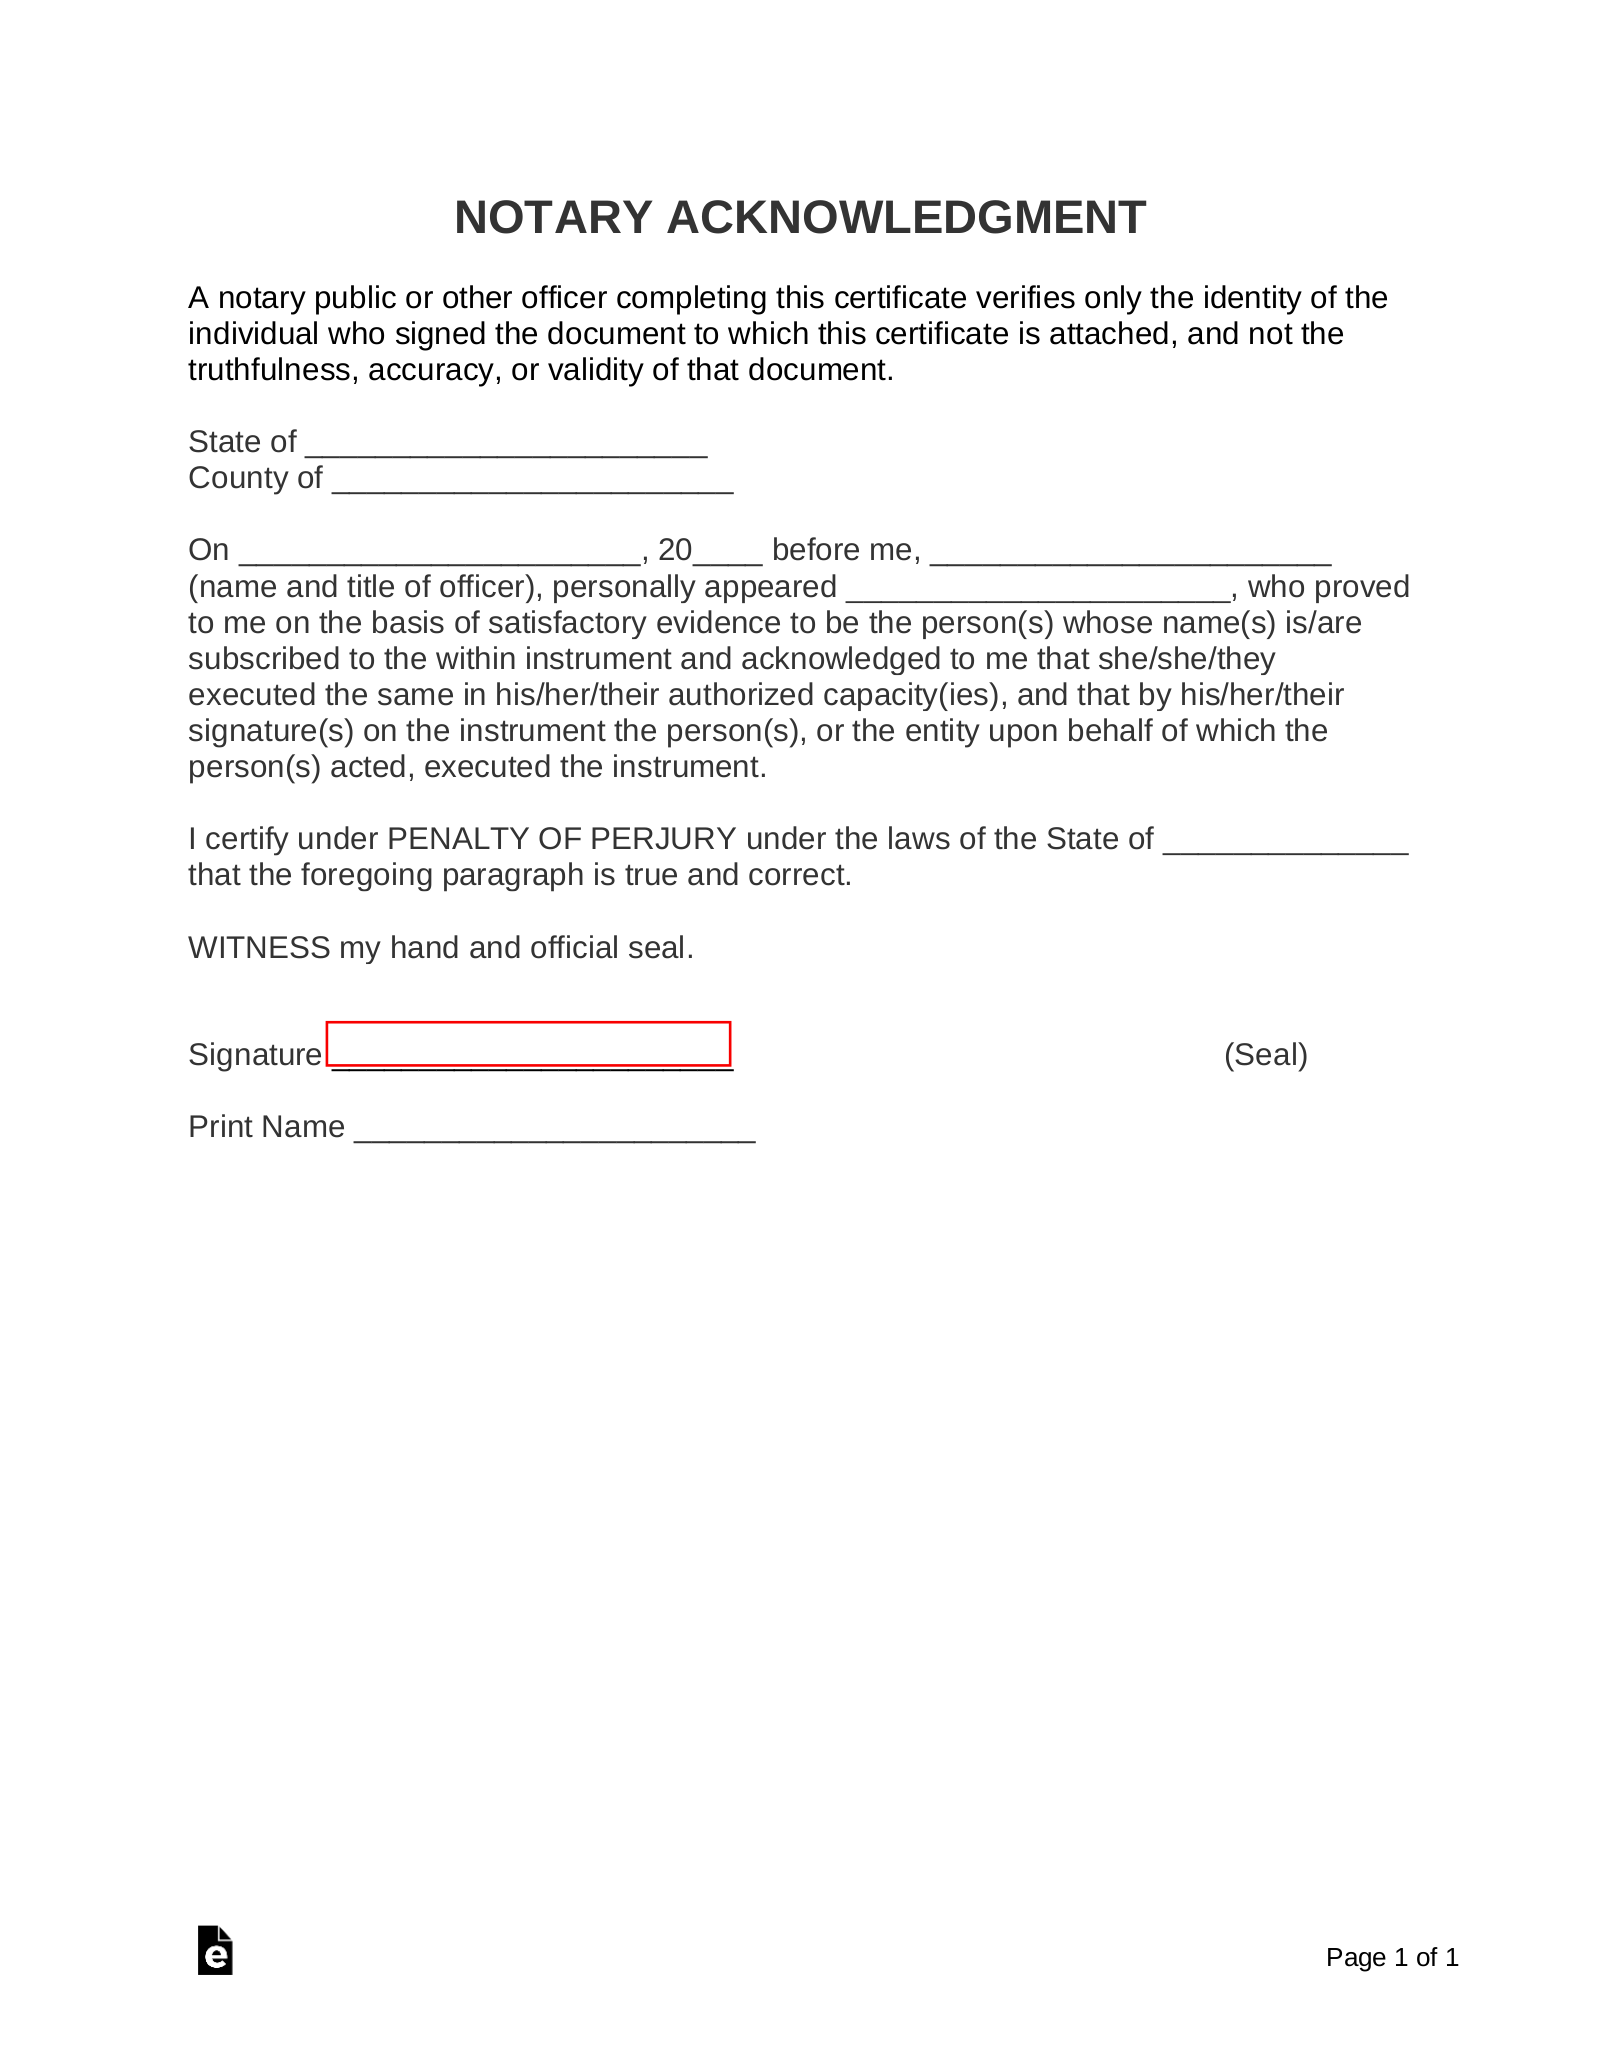 Notary Public Format For Letter from eforms.com